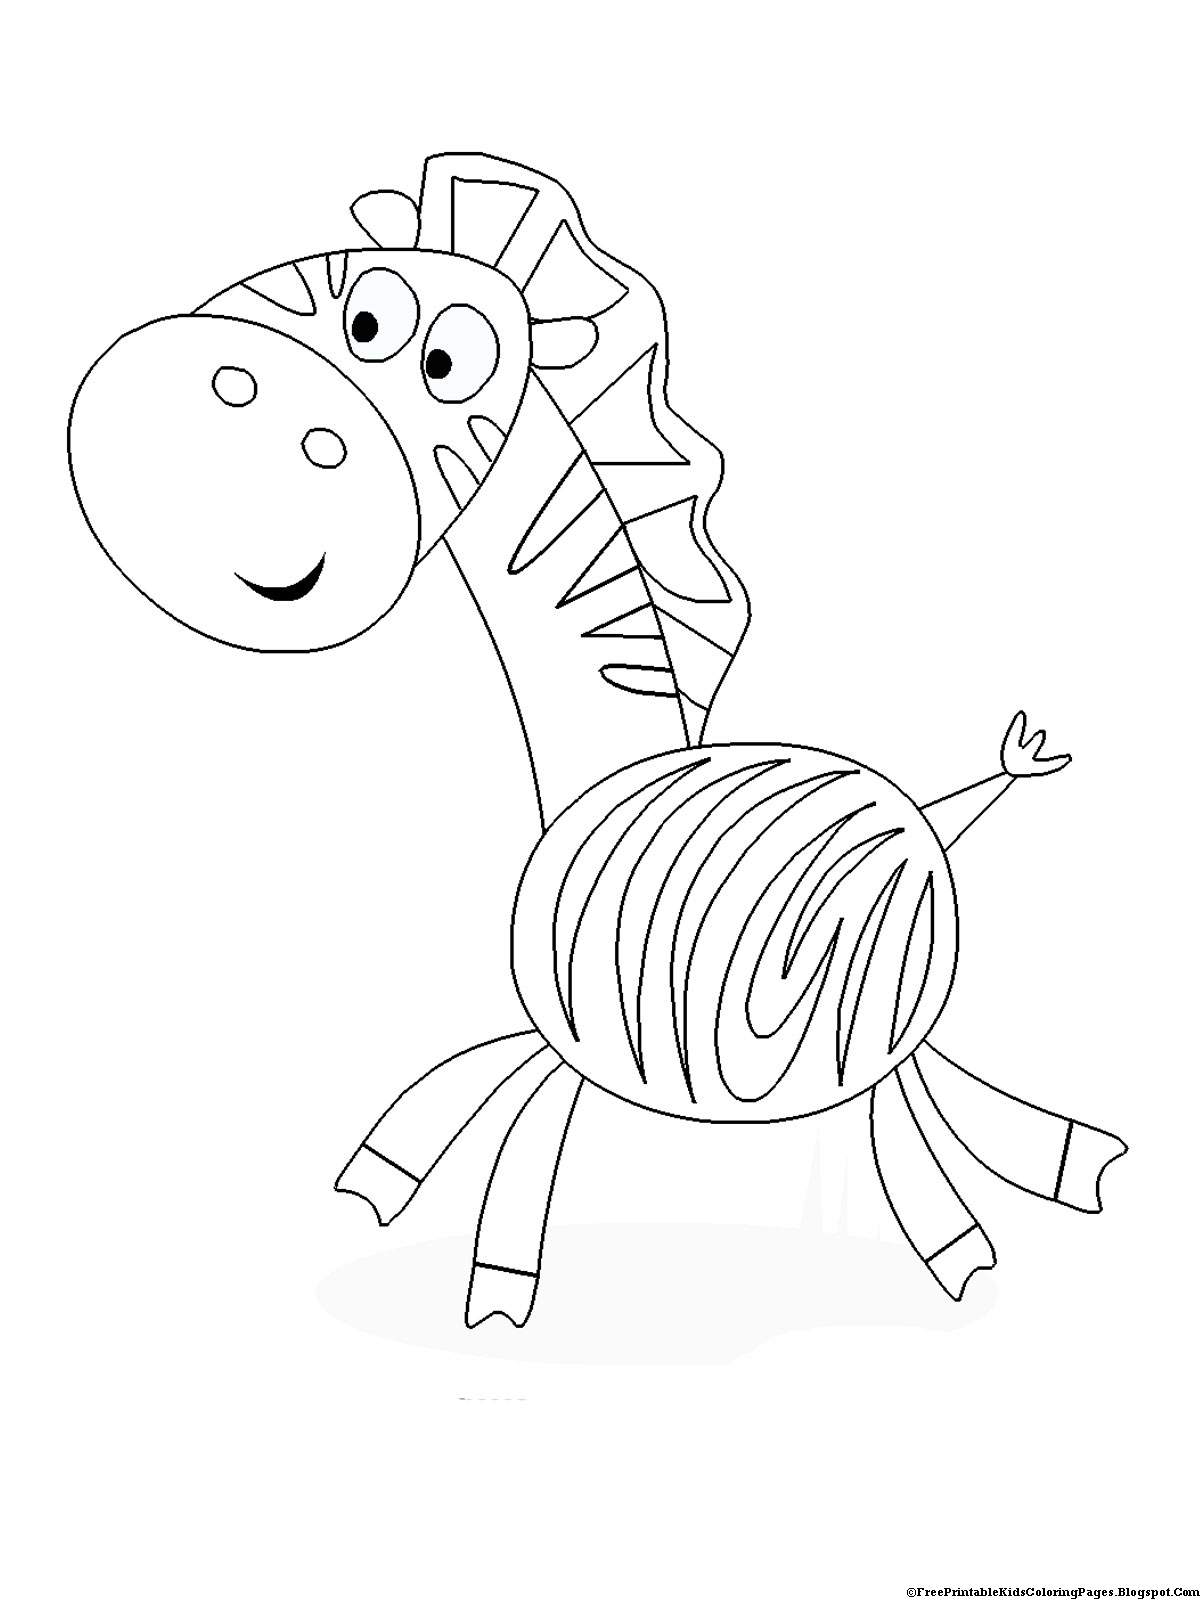 coloring sheet coloring pictures for kids pets coloring pages best coloring pages for kids coloring pictures kids sheet coloring for